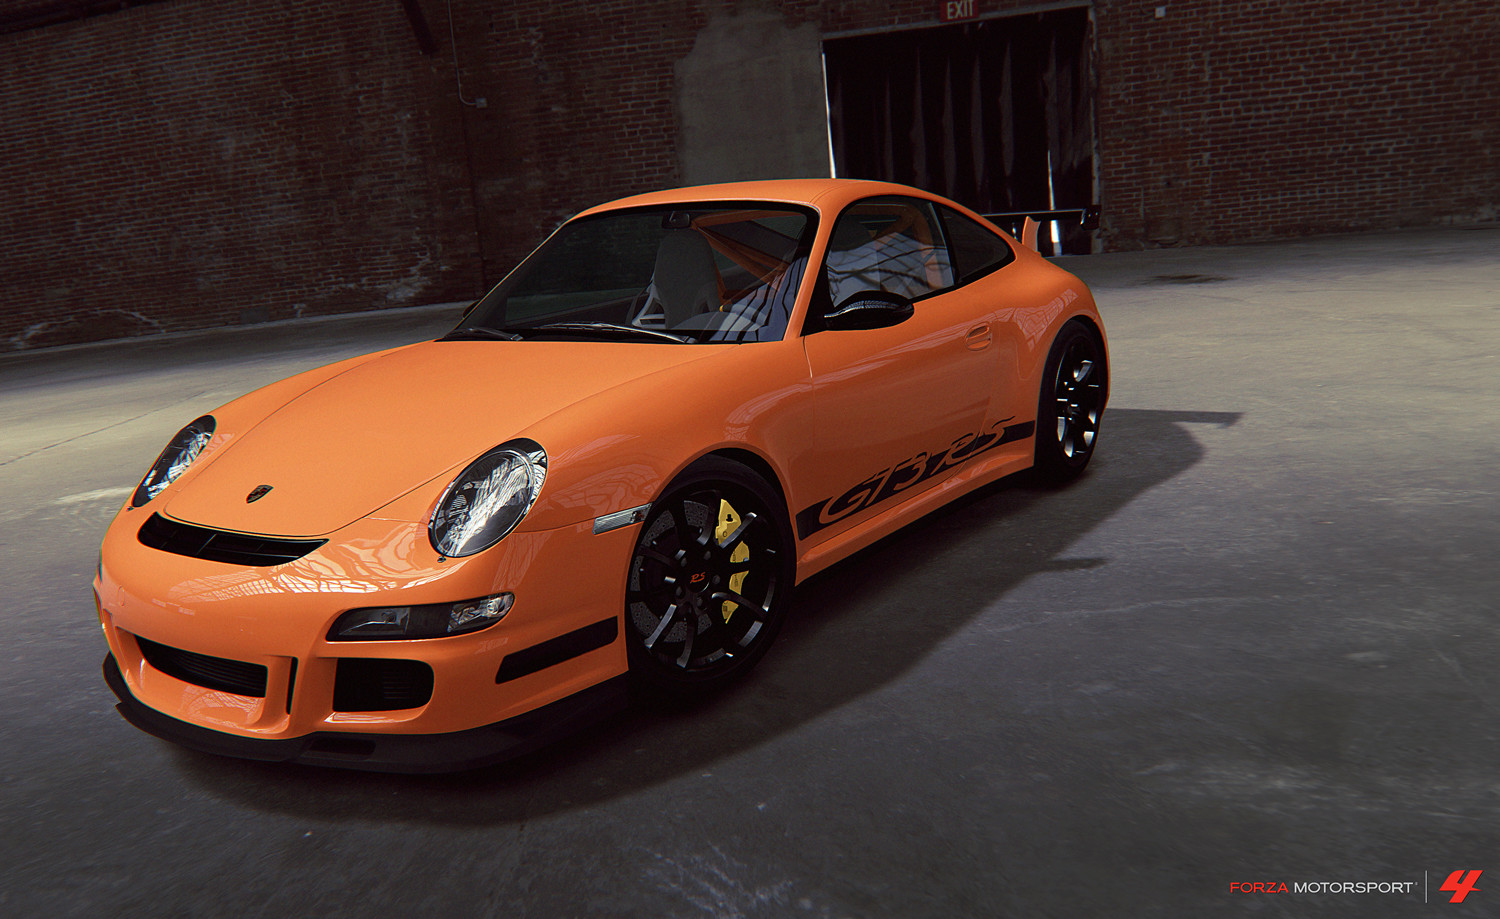 Took the 911 GT3 RS model from Forza 2 and updated it for Forza 4. Remodeled front and back end.